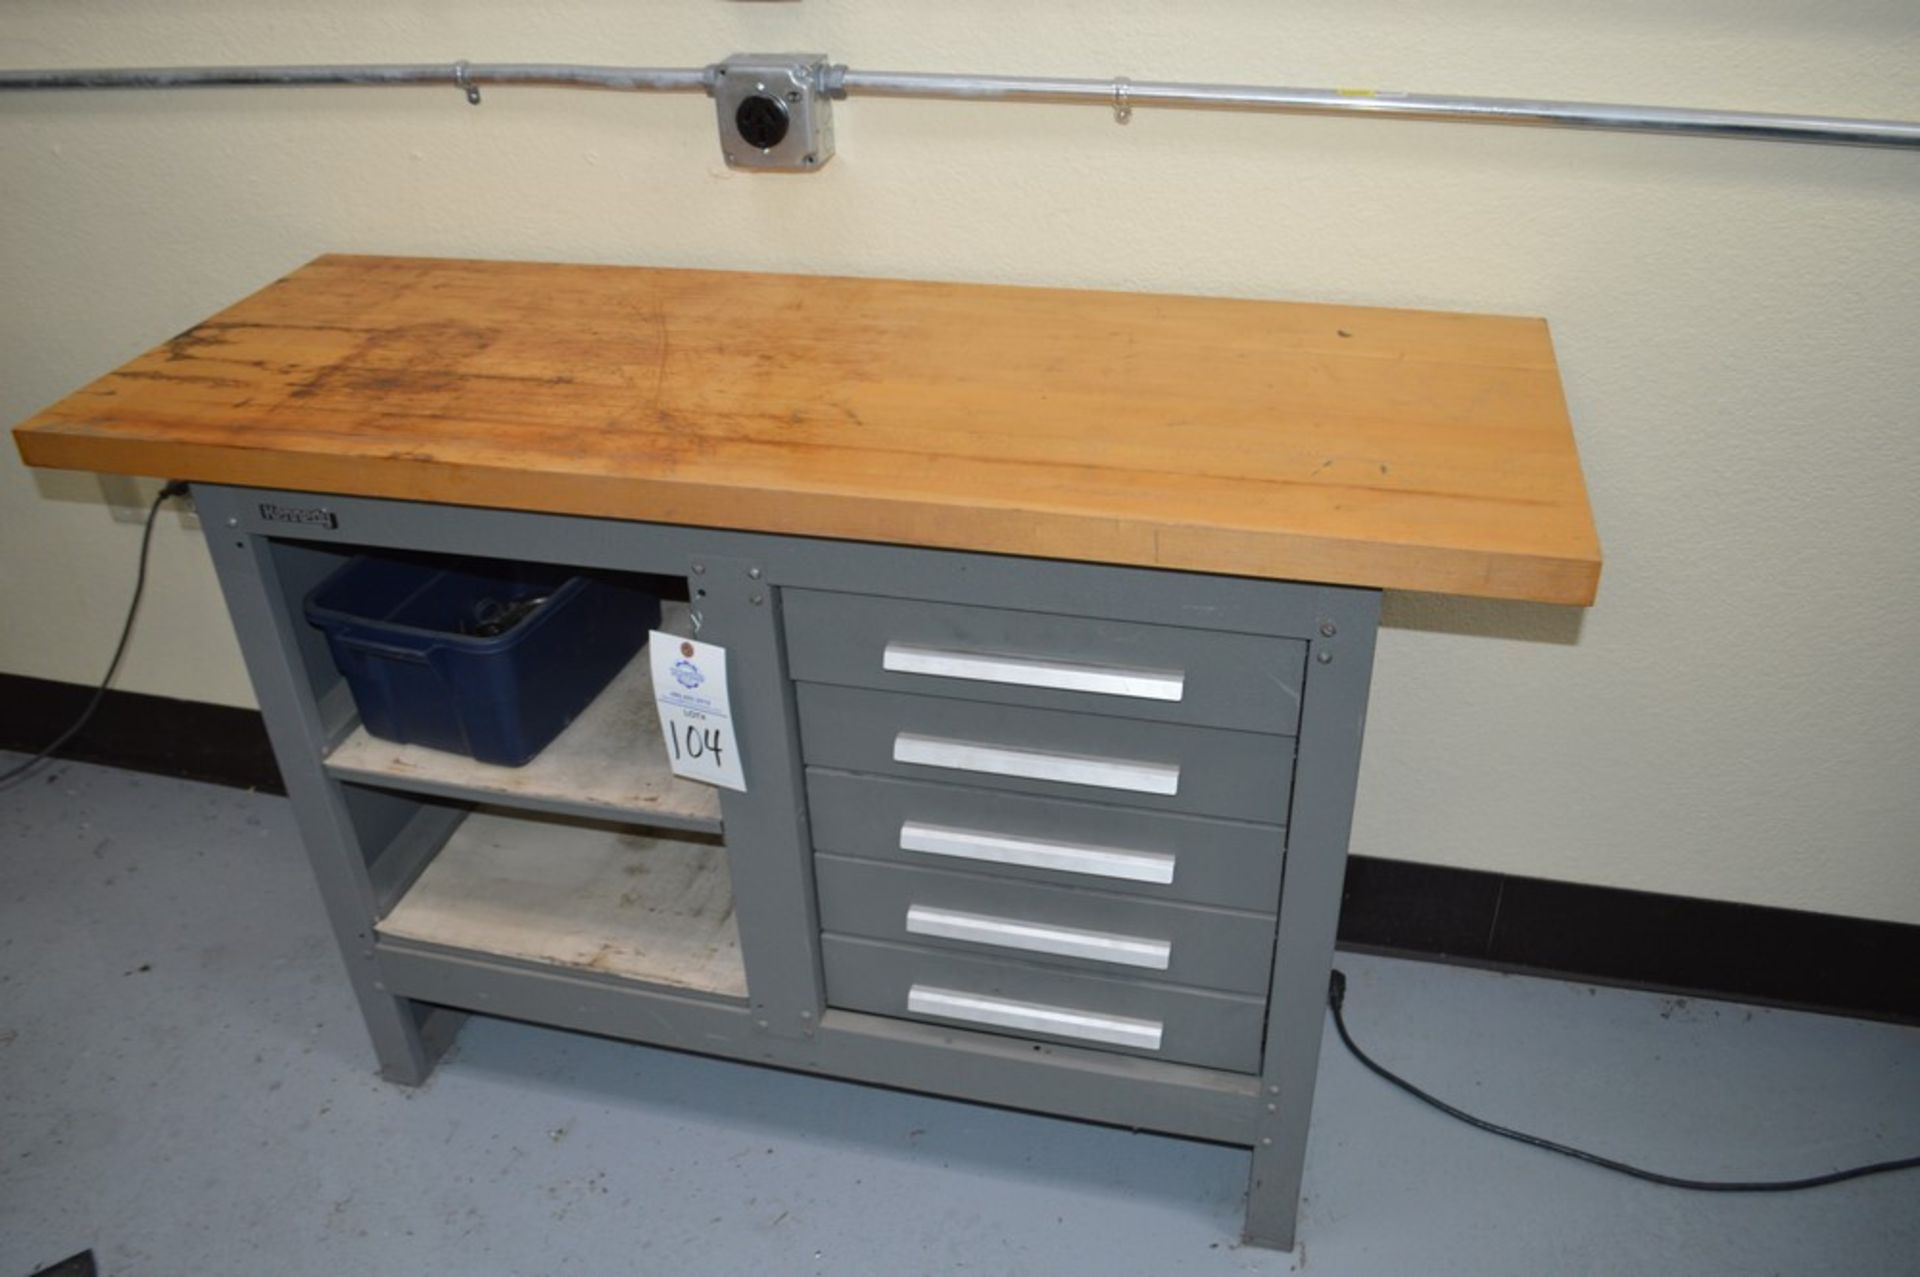 """Kennedy Wood Top, 5 drawer work bench, 54"""" x 20"""" wood top, 34.5"""" tall - Image 2 of 3"""